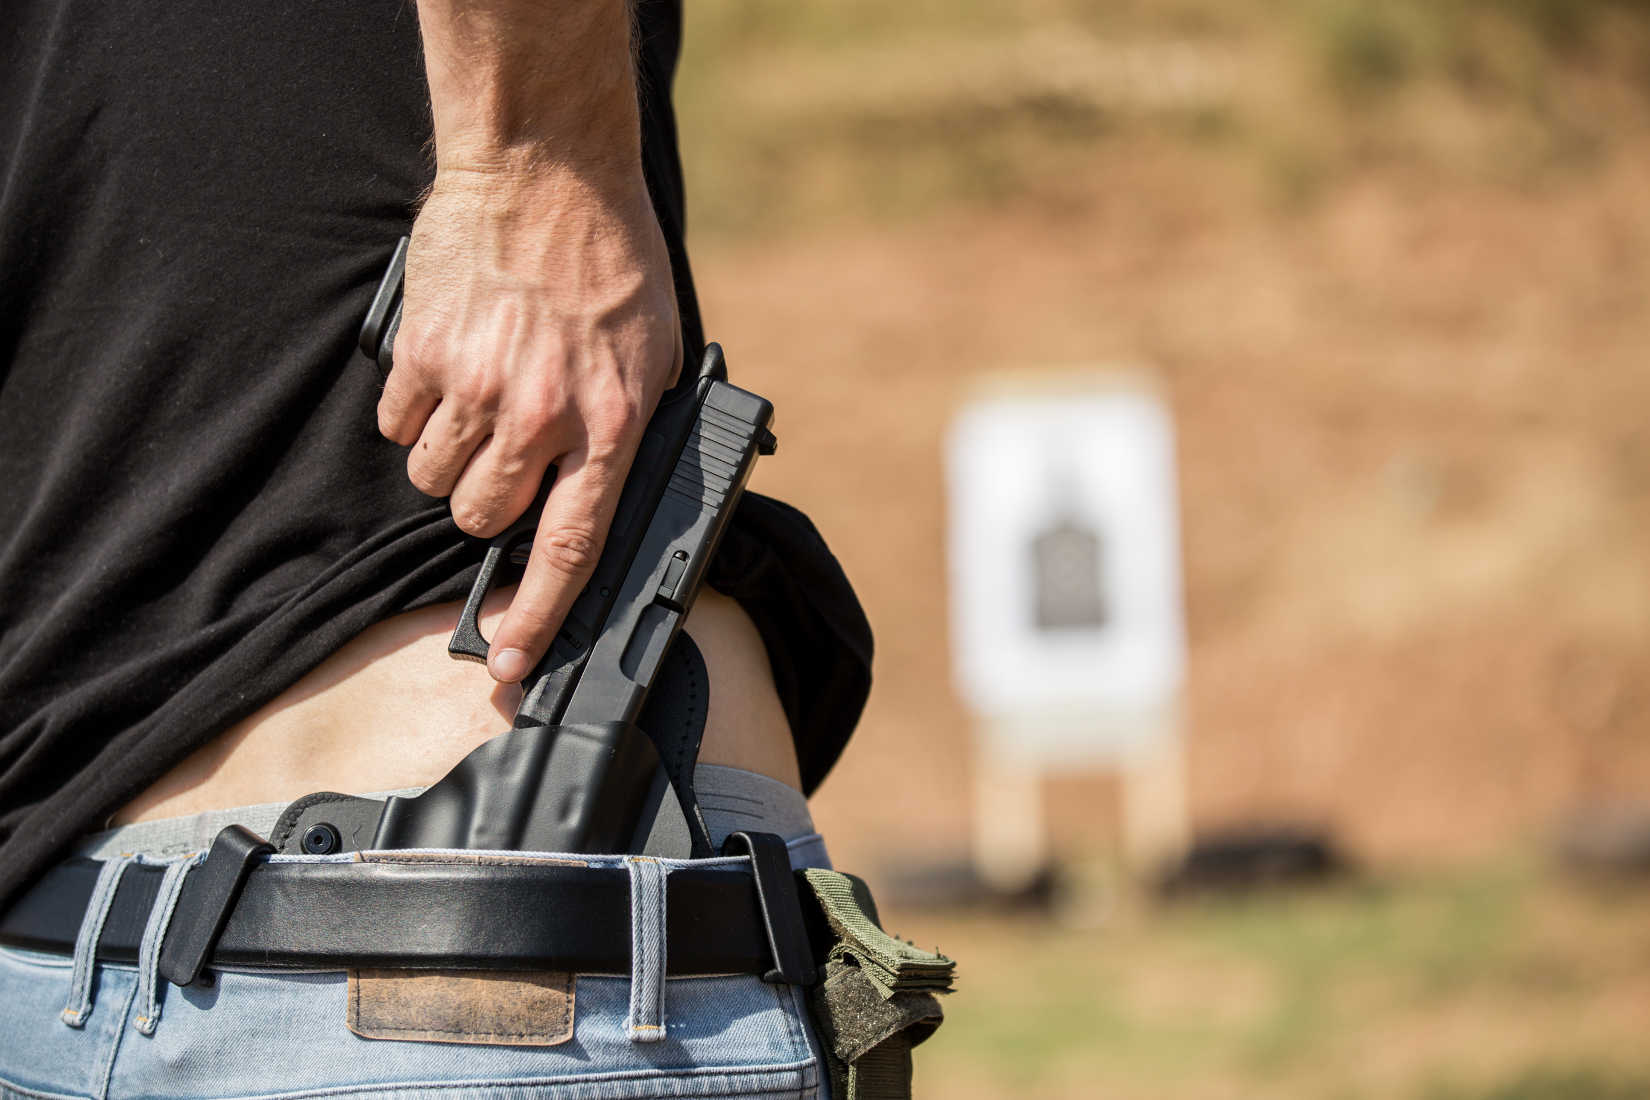 John Lott: Here's What the Latest Data Says about U.S. Concealed Carry Permit Holders